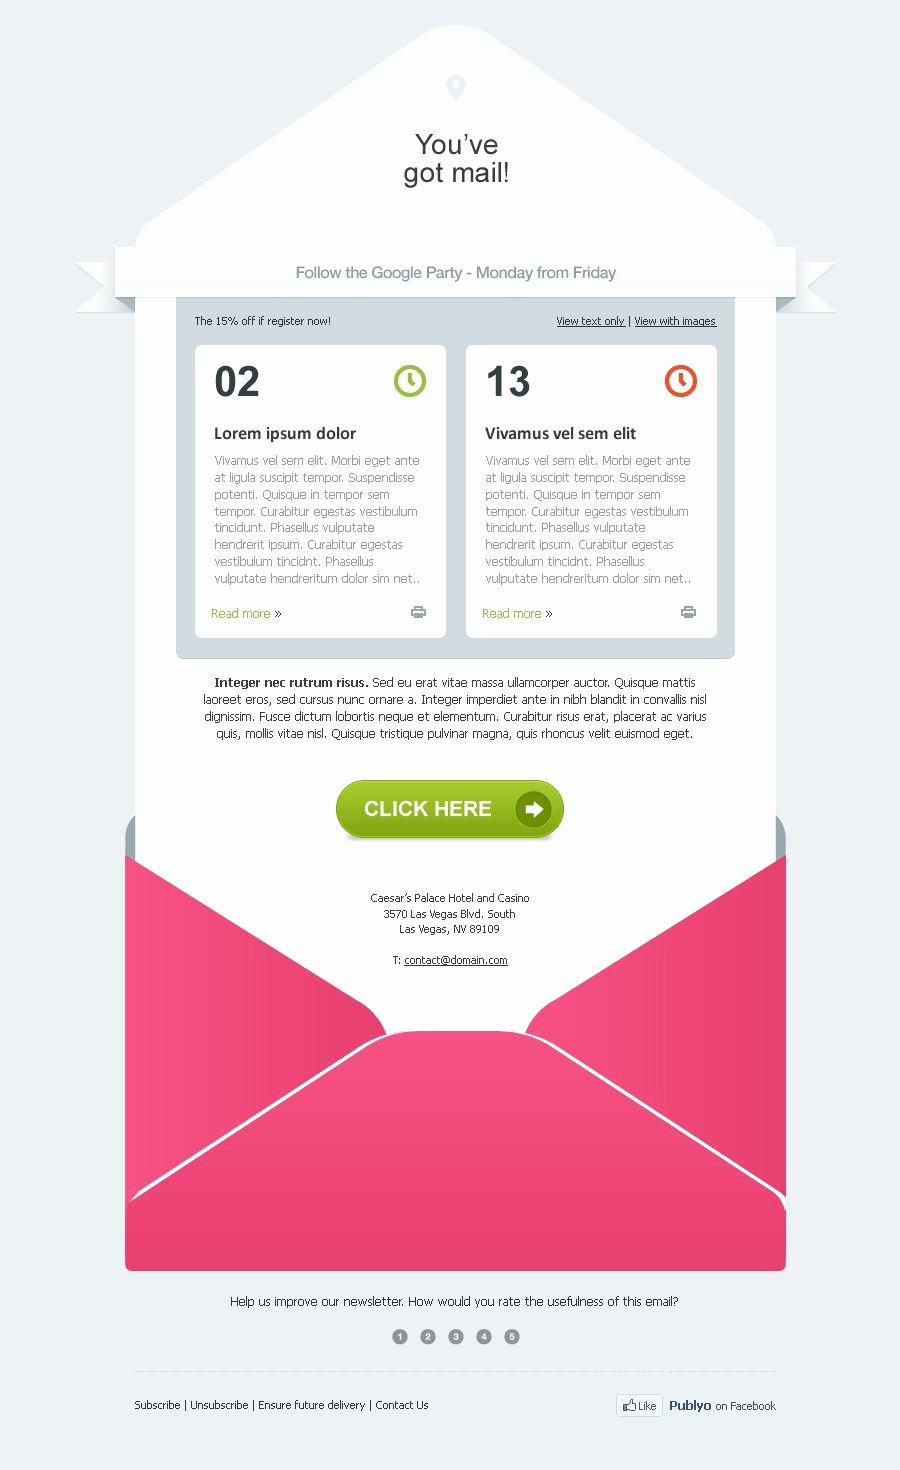 Best Email Template Designs Inspirational 50 Of the Best Email Marketing Designs We Ve Ever Seen